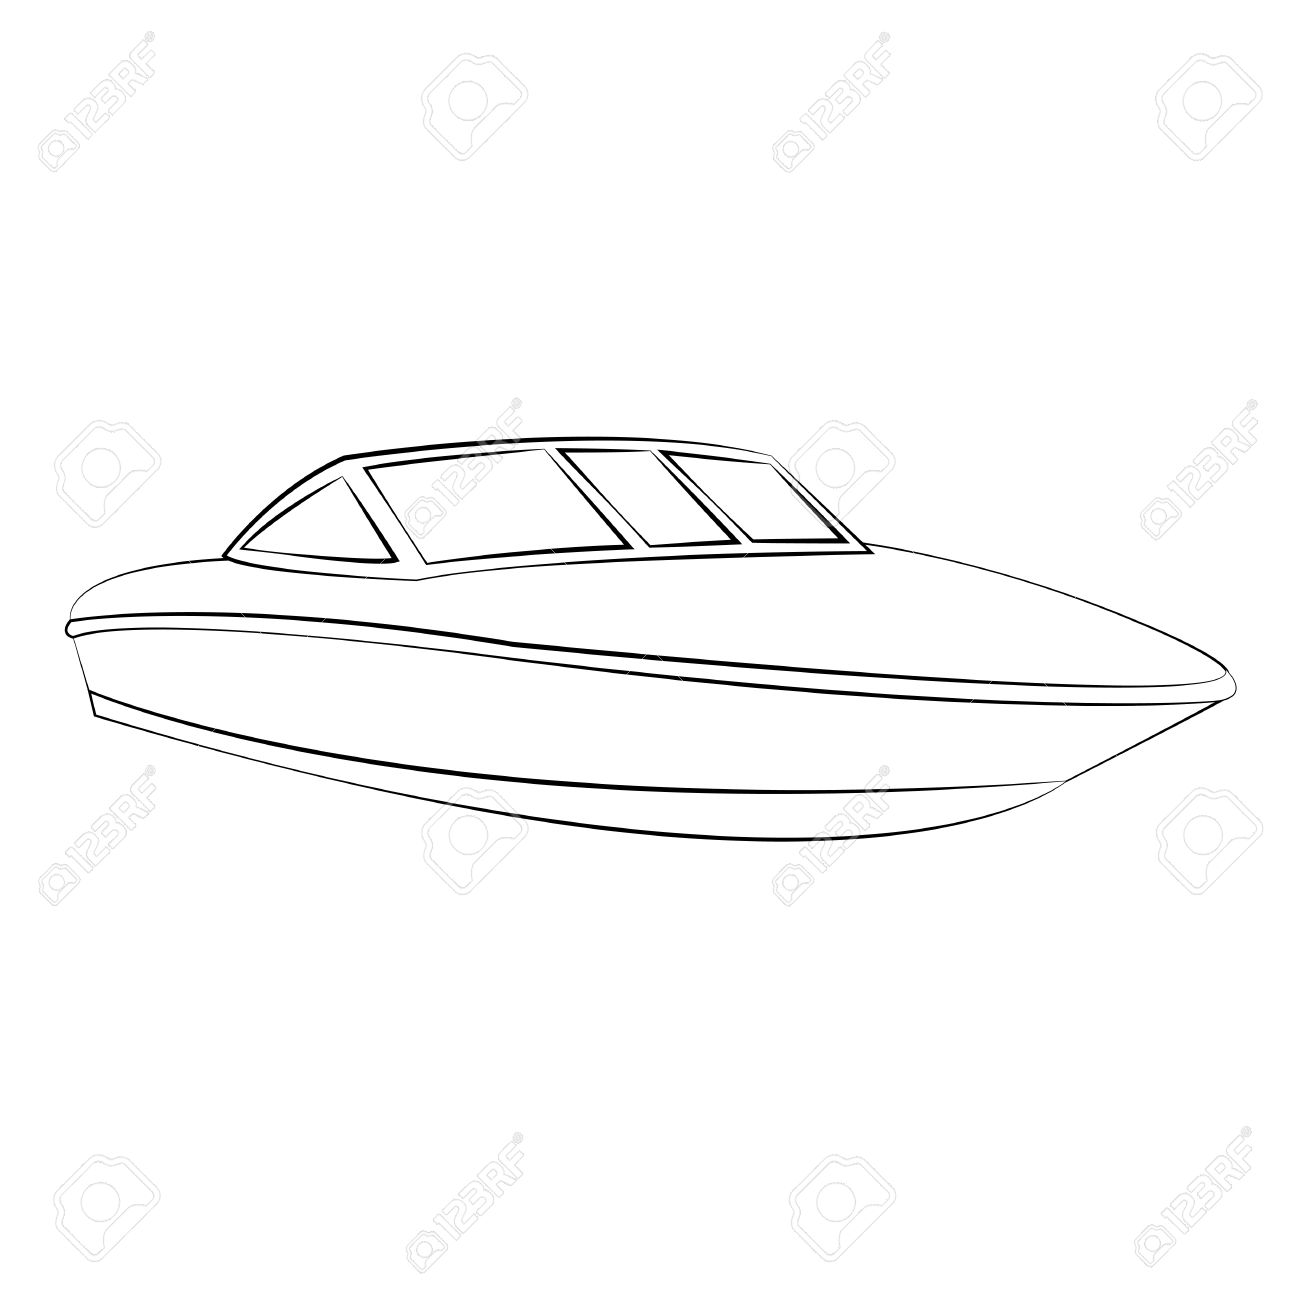 Boat Outline Clipart